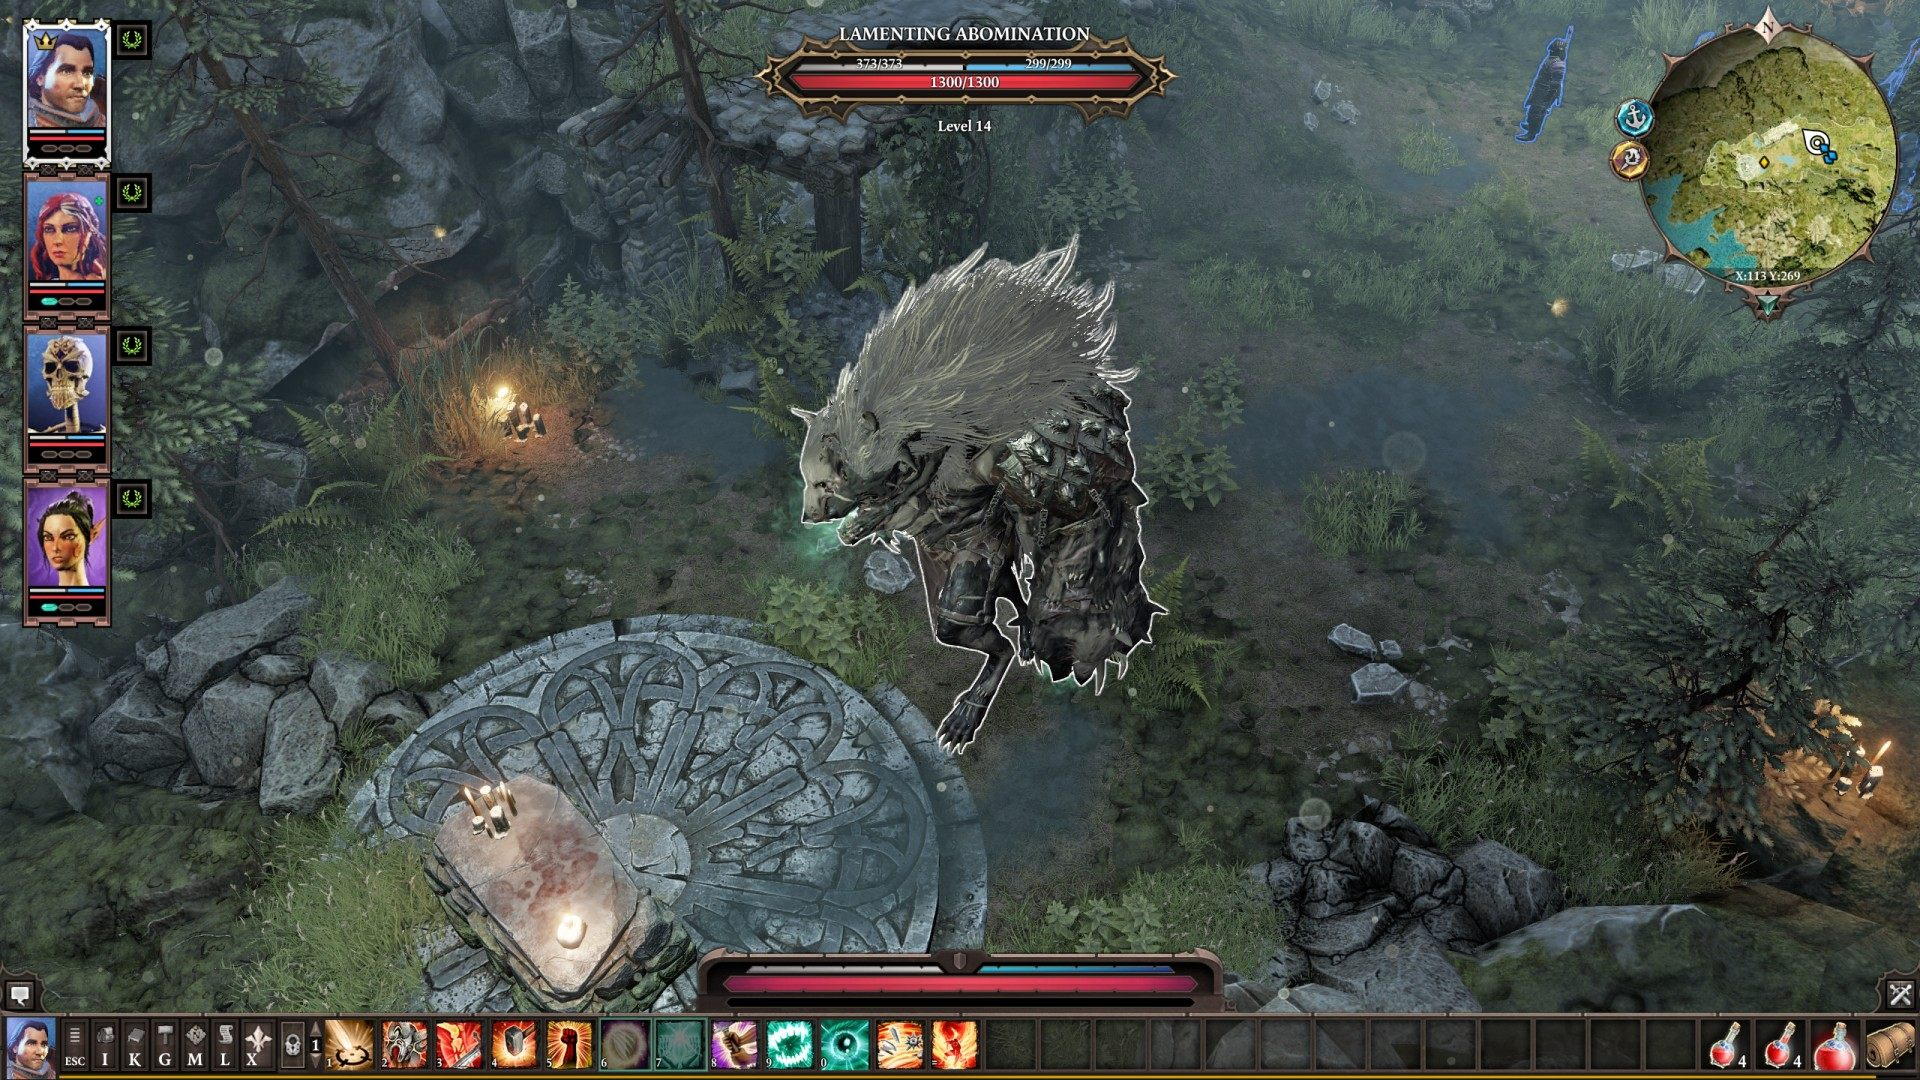 Is Divinity: Original Sin 2 good at anything other than combat